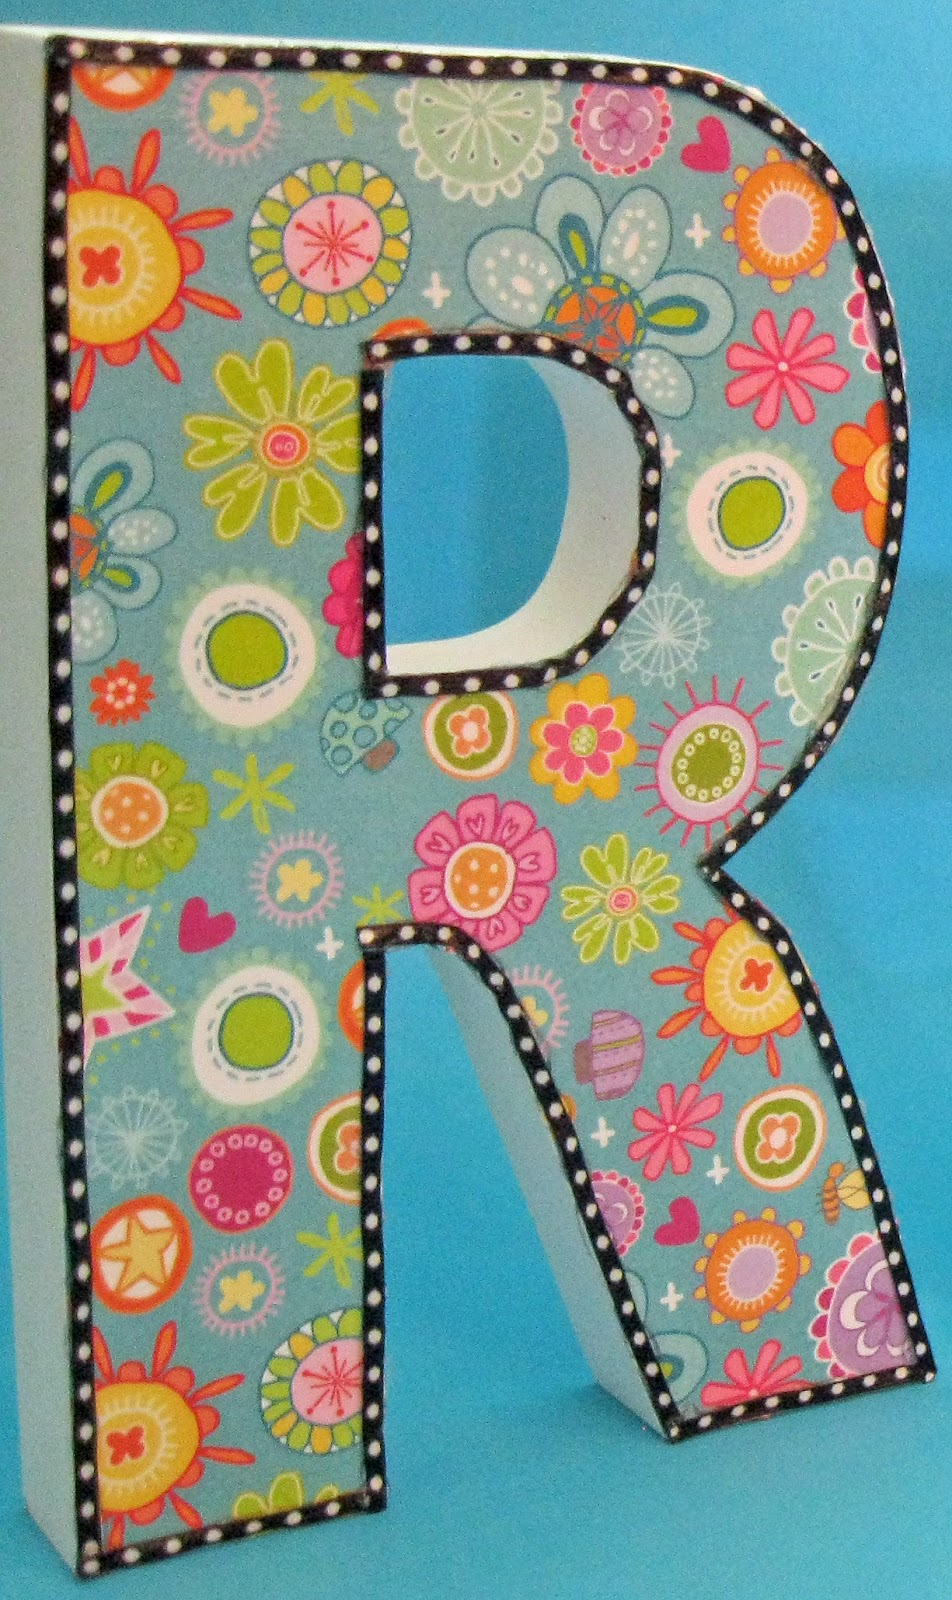 diy letter decor classroom diy diy decorative letters 21385 | IMG 0383a